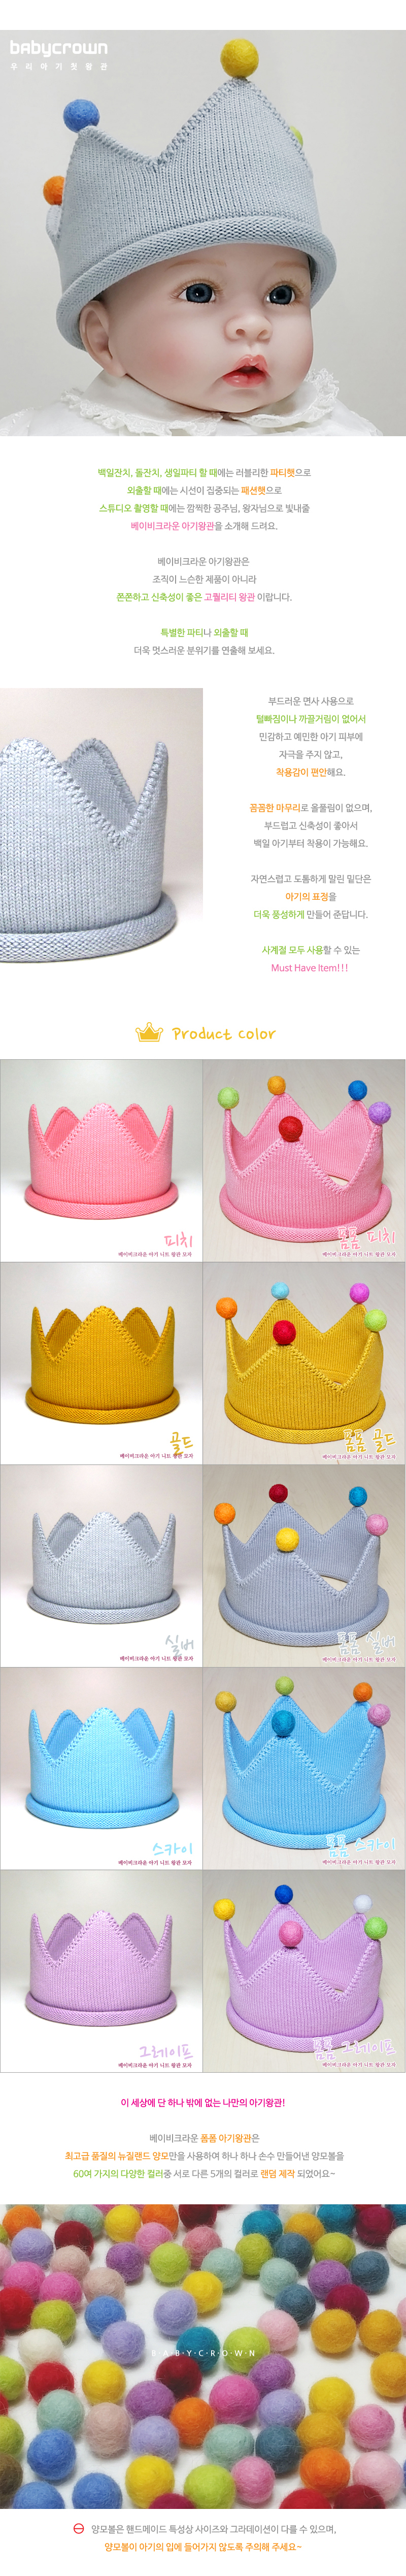 [ Babycrown ] [Baby Crown] baby knit crown cutie pompom